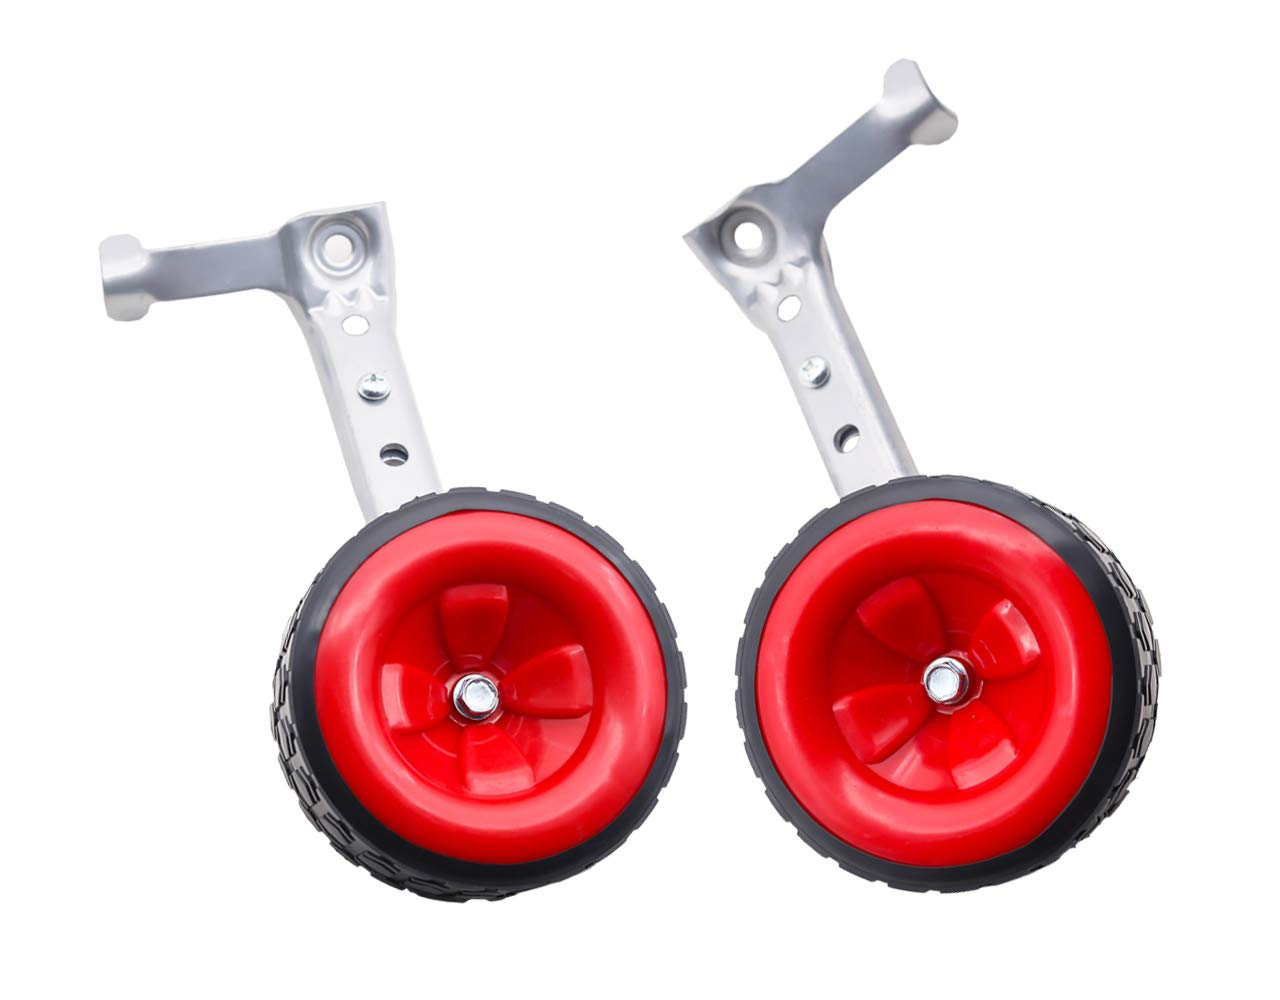 MOSHAY Bicycle Training Wheels Fits 16 18 20 22 24 inch Kids Variable Bike (D-red) by MOSHAY